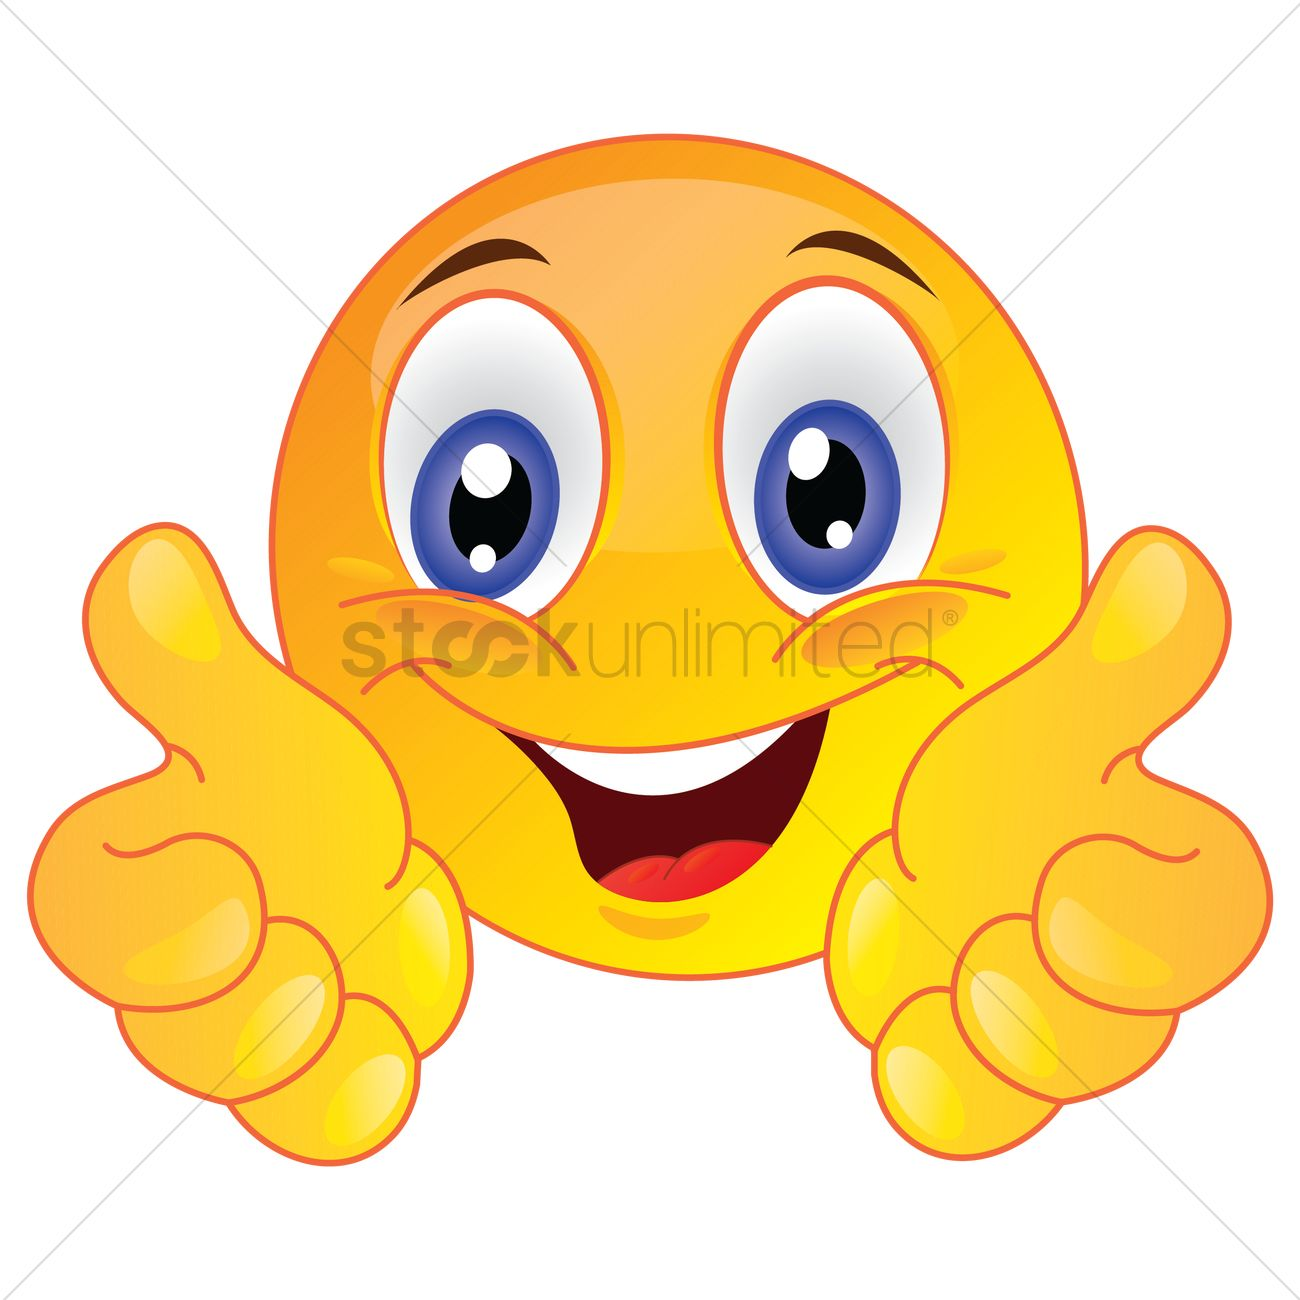 Smiley face showing thumbs up Vector Image.